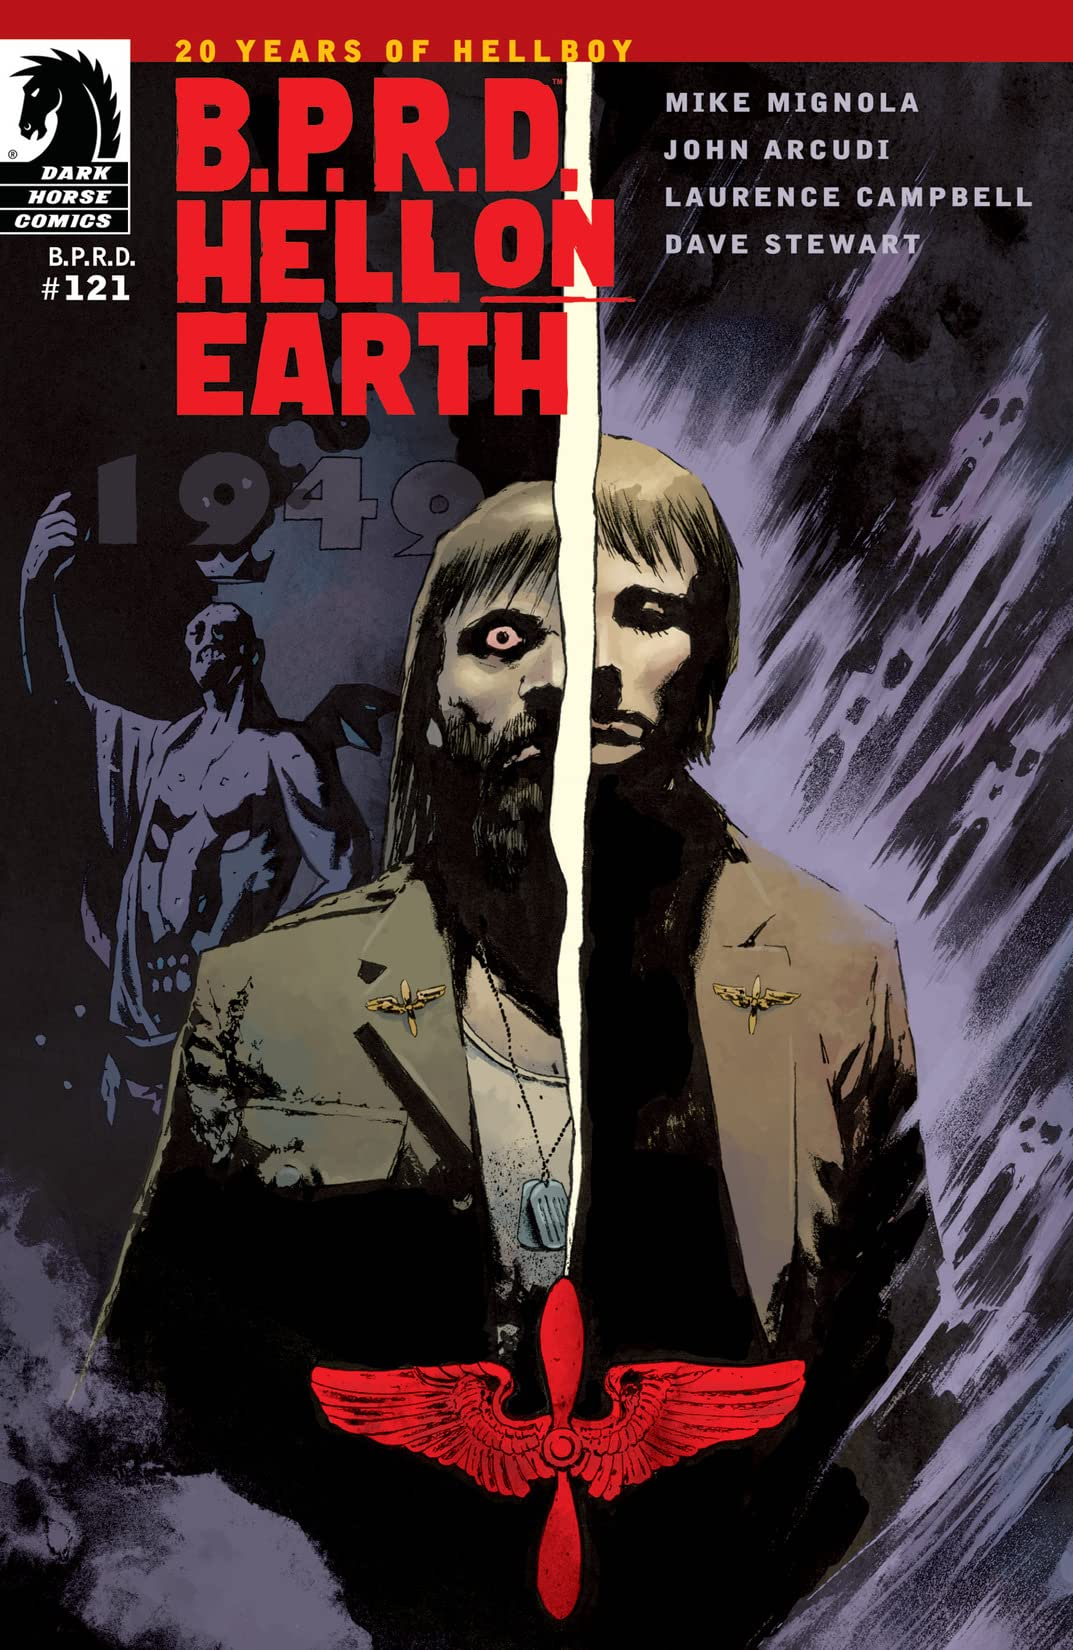 B.P.R.D.: Hell on Earth #121